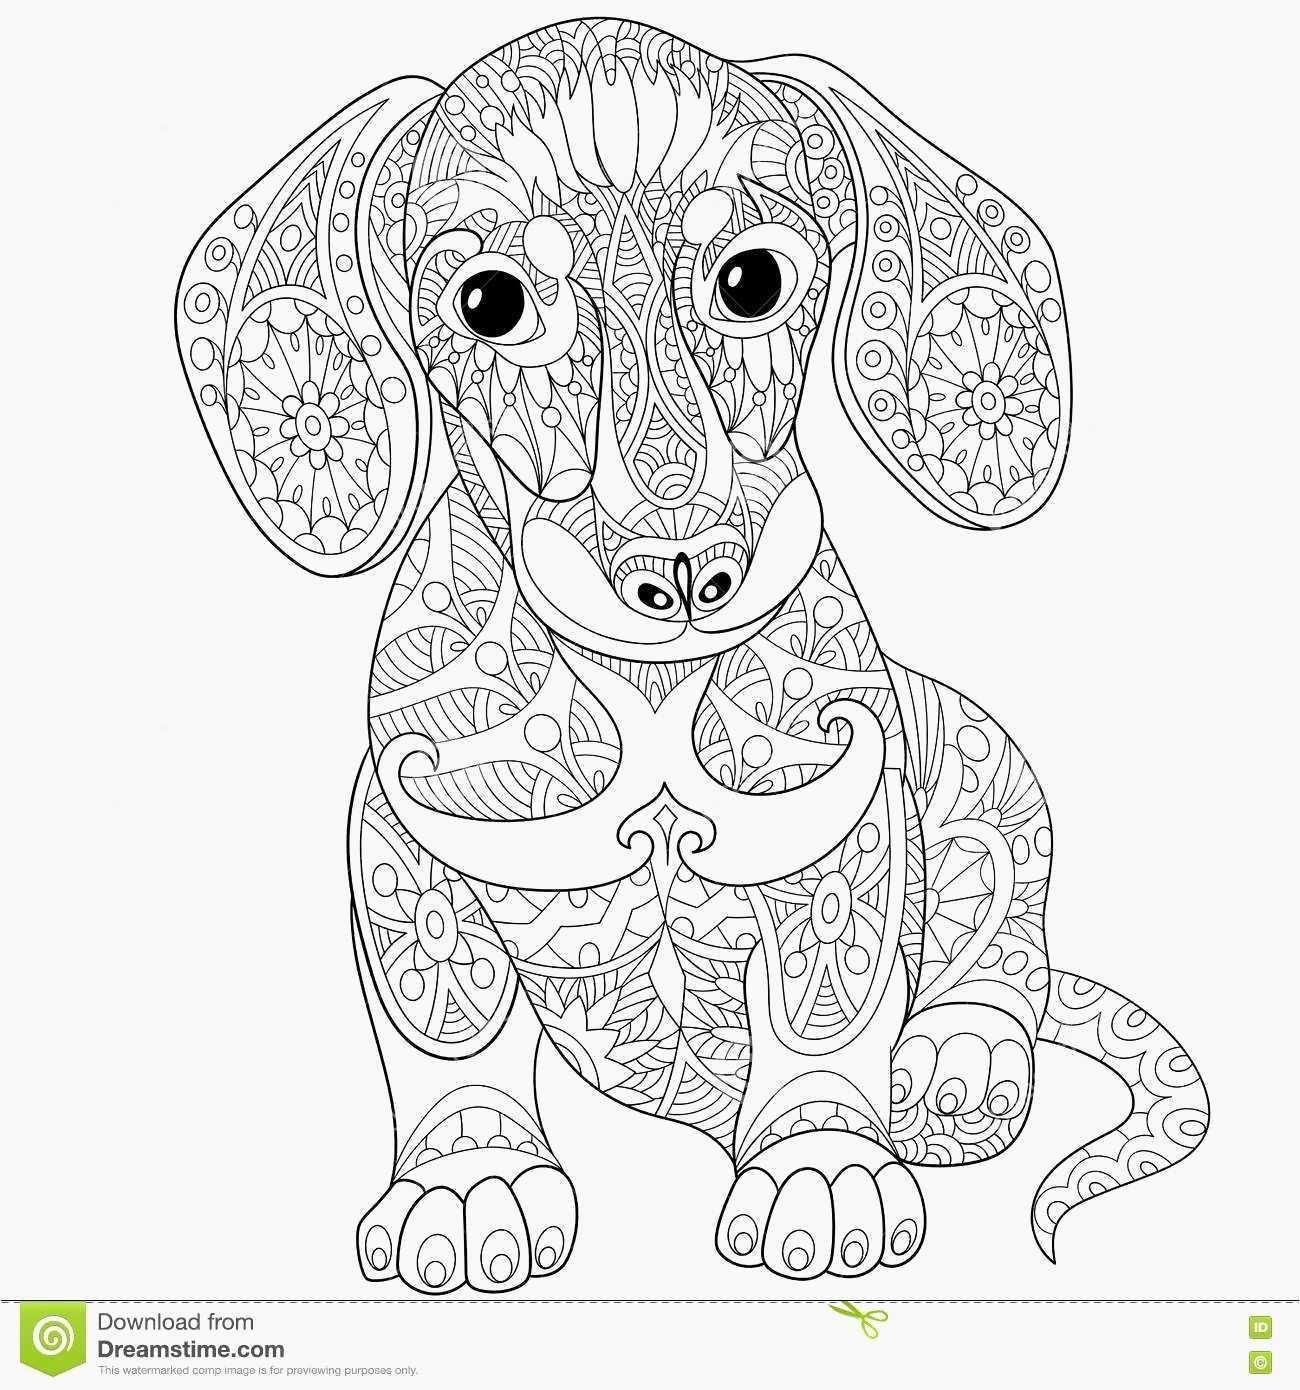 Coloring Pictures Of Dogs New Dachshund Coloring Pages Luxury Dbz